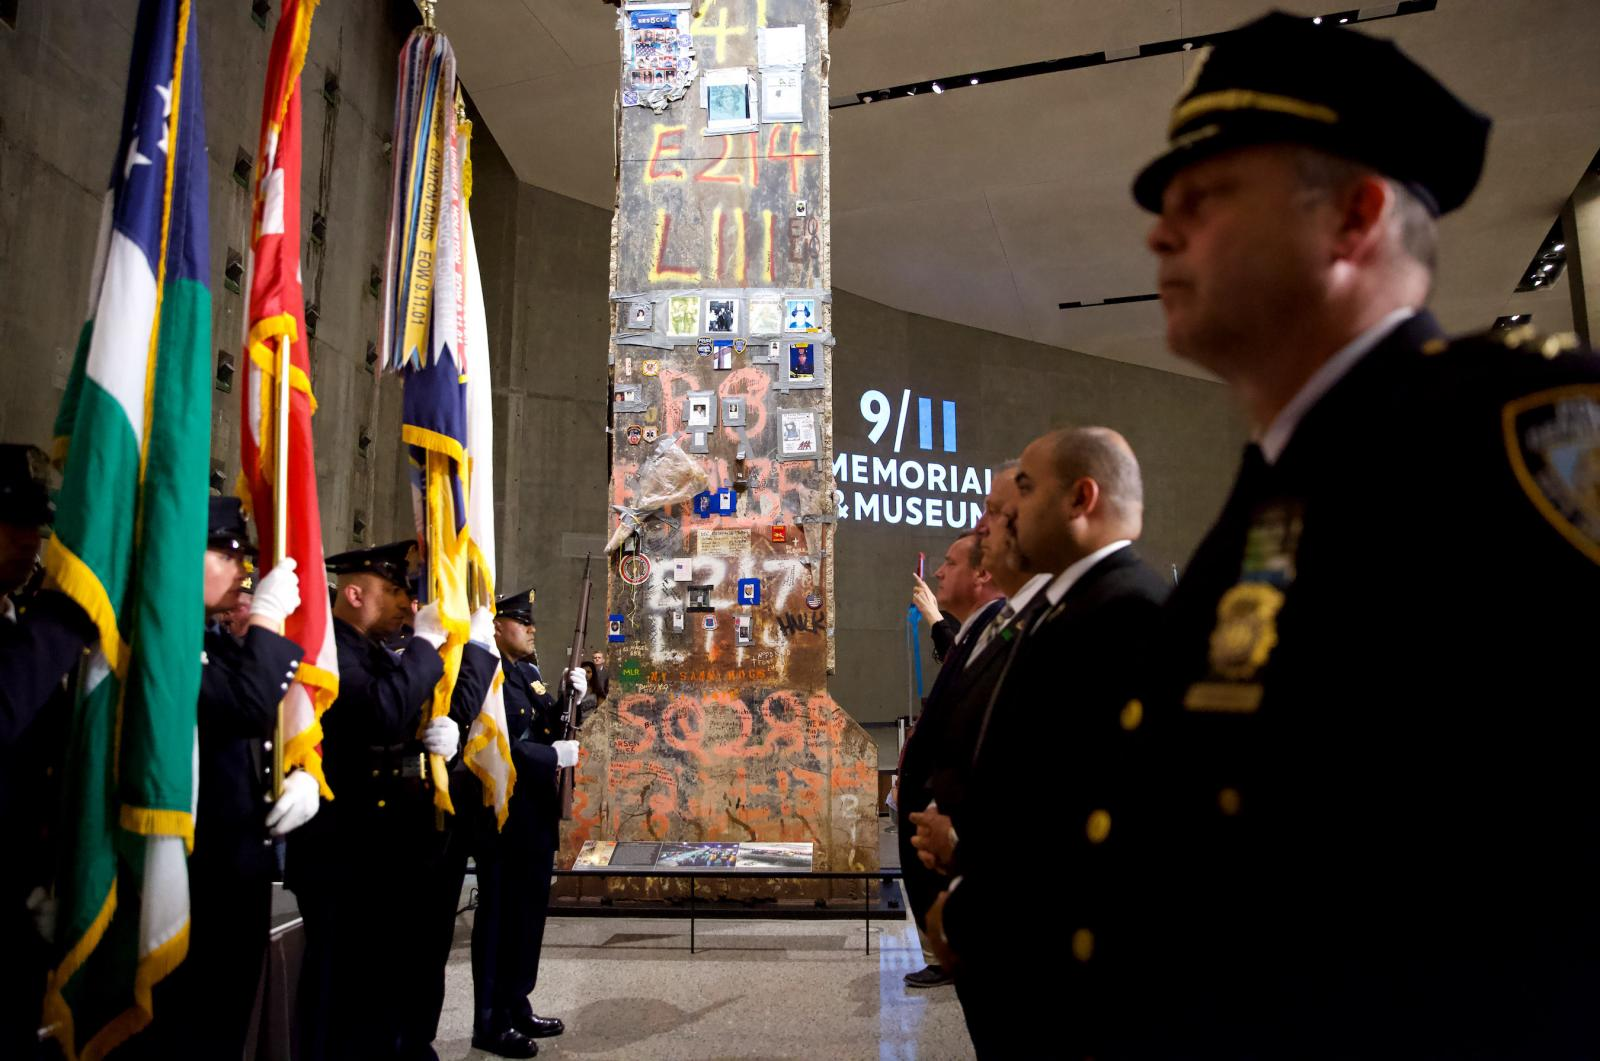 The Last Column towers over NYPD flag bearers standing to the left and men in suits and ties standing to the right. The Last Column, a fixture of Foundation Hall, is covered in photos and written tribute to rescue and recovery workers.